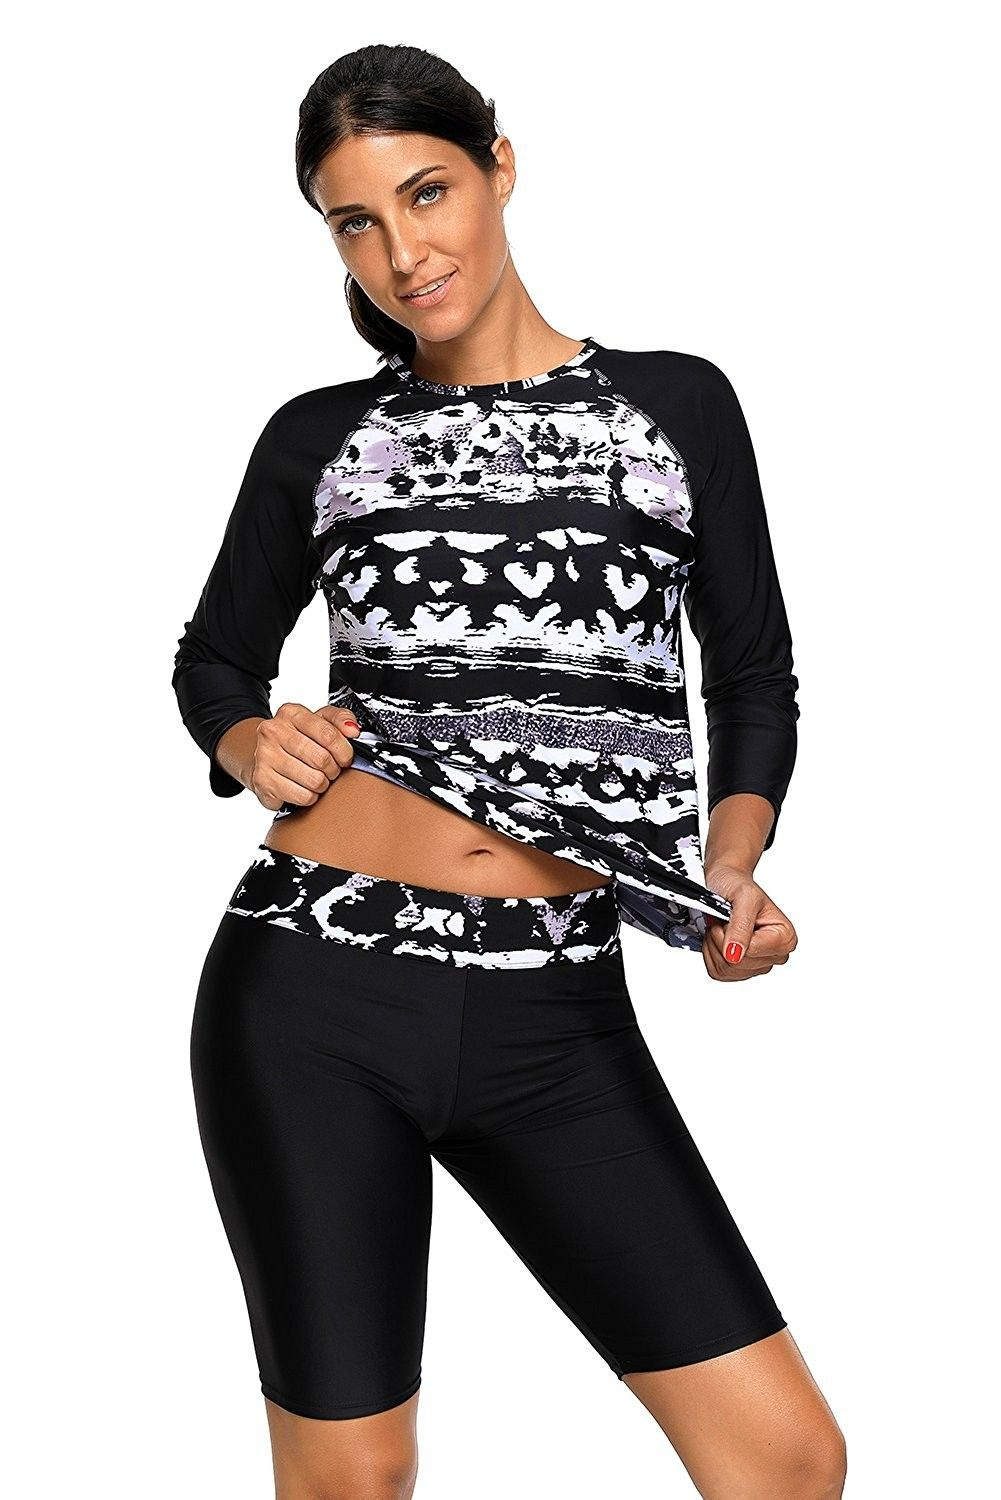 62aa78ee18 Women's Clothing, Swimsuits & Cover Ups, Rash Guards, Women's Printed Long  Sleeve Rash Guard Top and Capri Pants Two Piece Swimsuit Set - Black ...